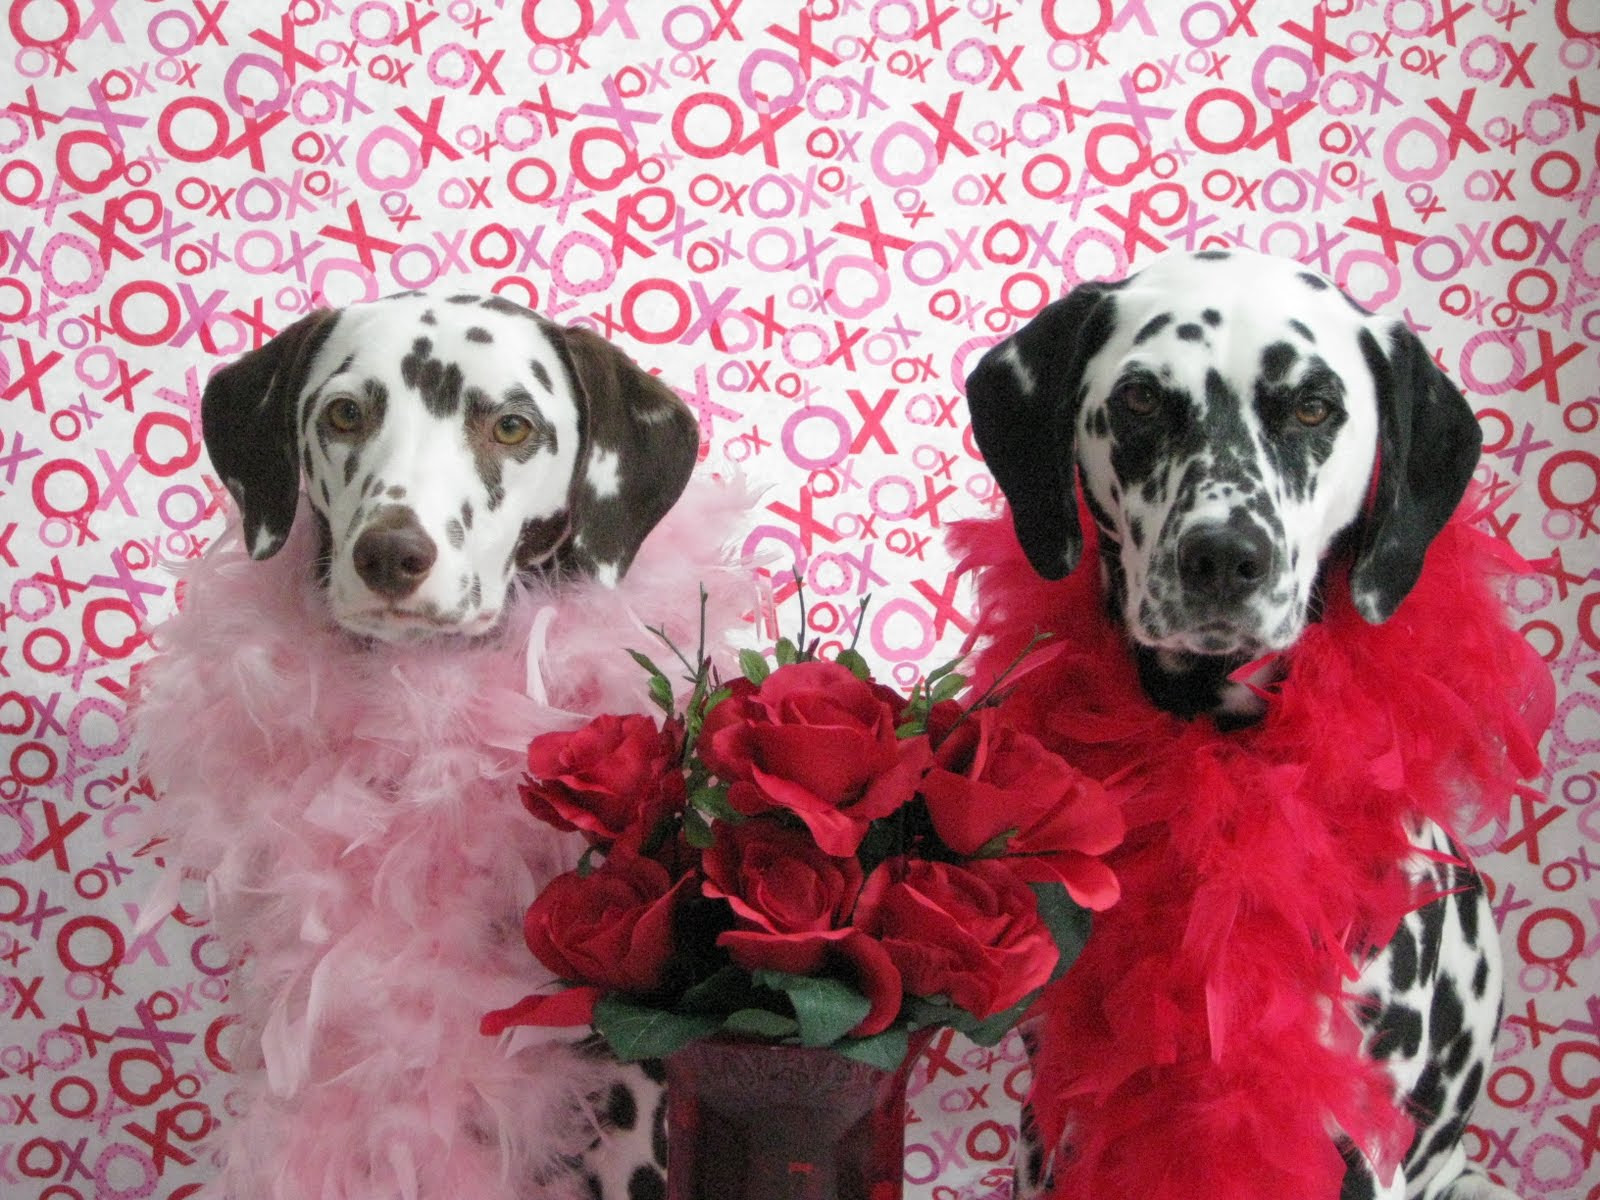 Dalmatian Dogs Married Couple Photo And Wallpaper Beautiful